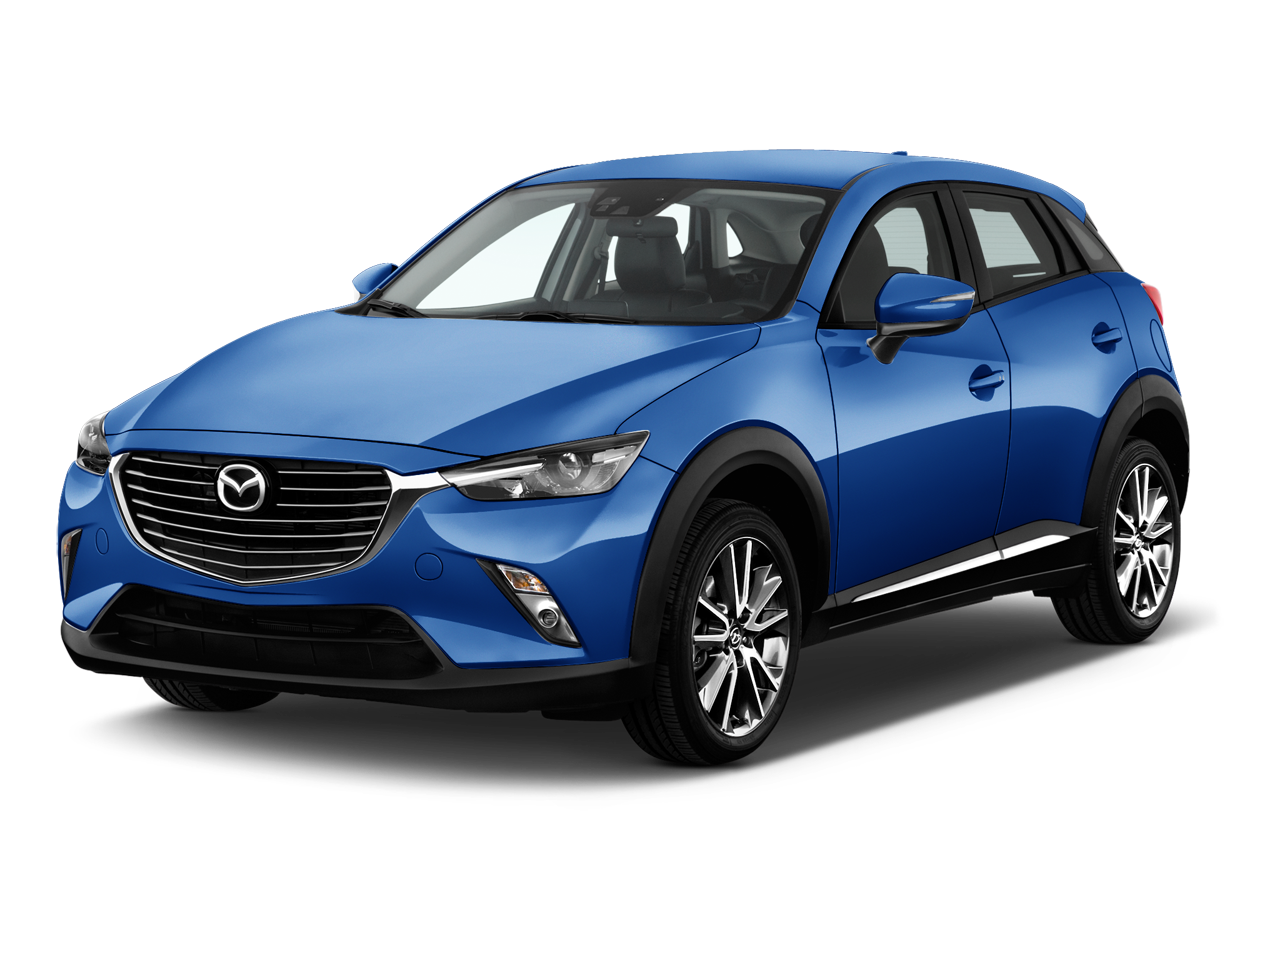 new 2017 mazda cx 3 sport near redmond wa mazda of everett. Black Bedroom Furniture Sets. Home Design Ideas